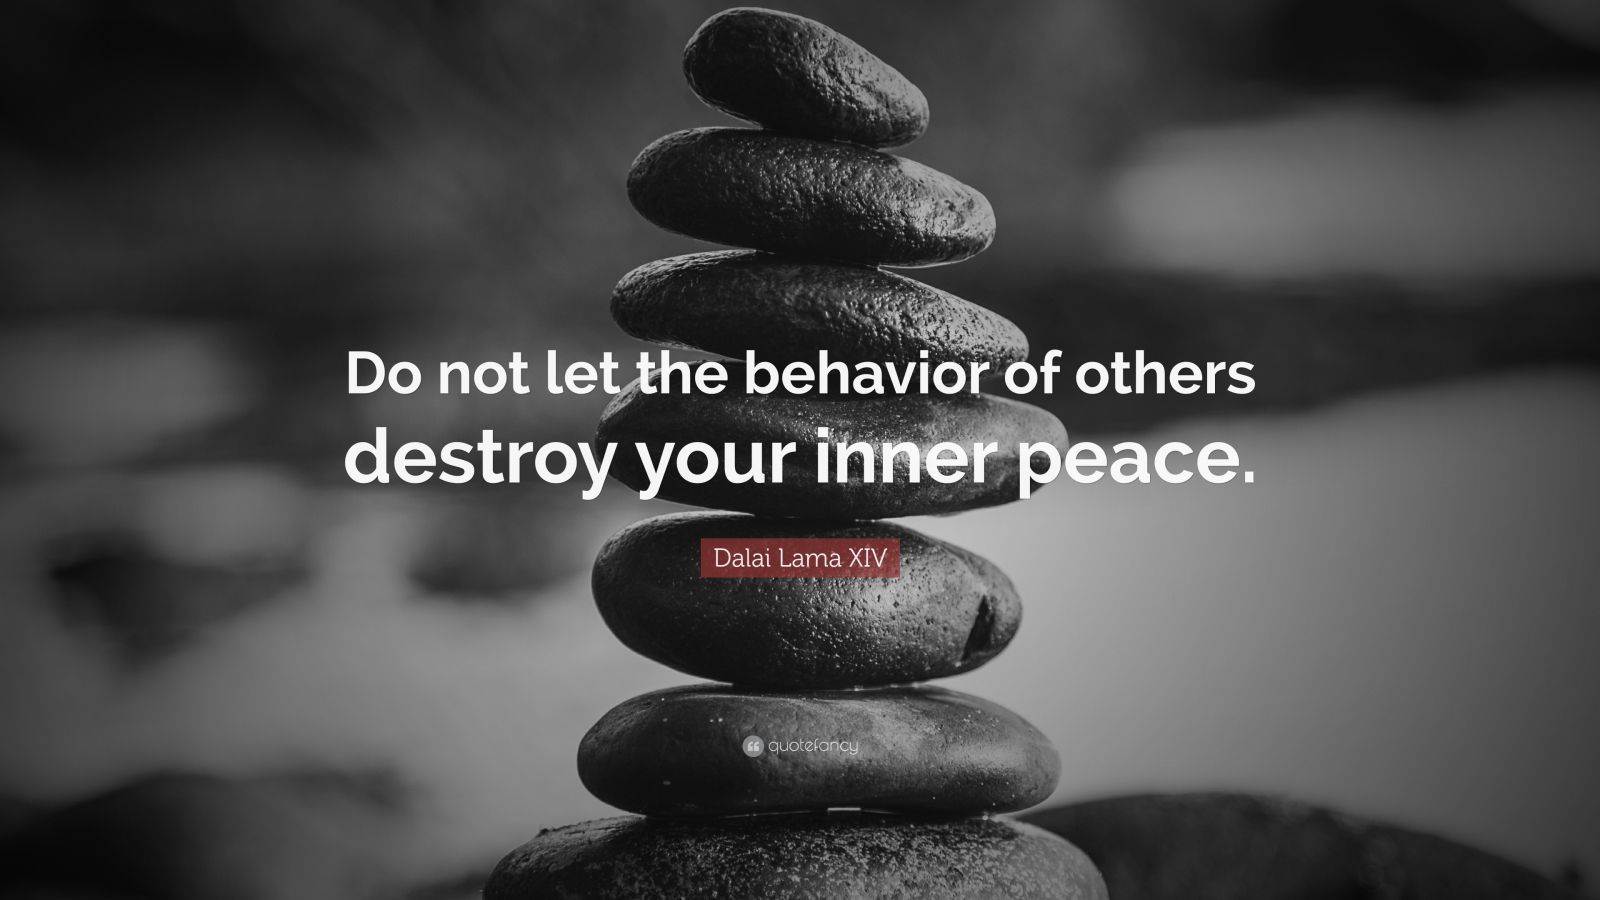 Socrates Wallpaper Quotes Dalai Lama Xiv Quote Do Not Let The Behavior Of Others